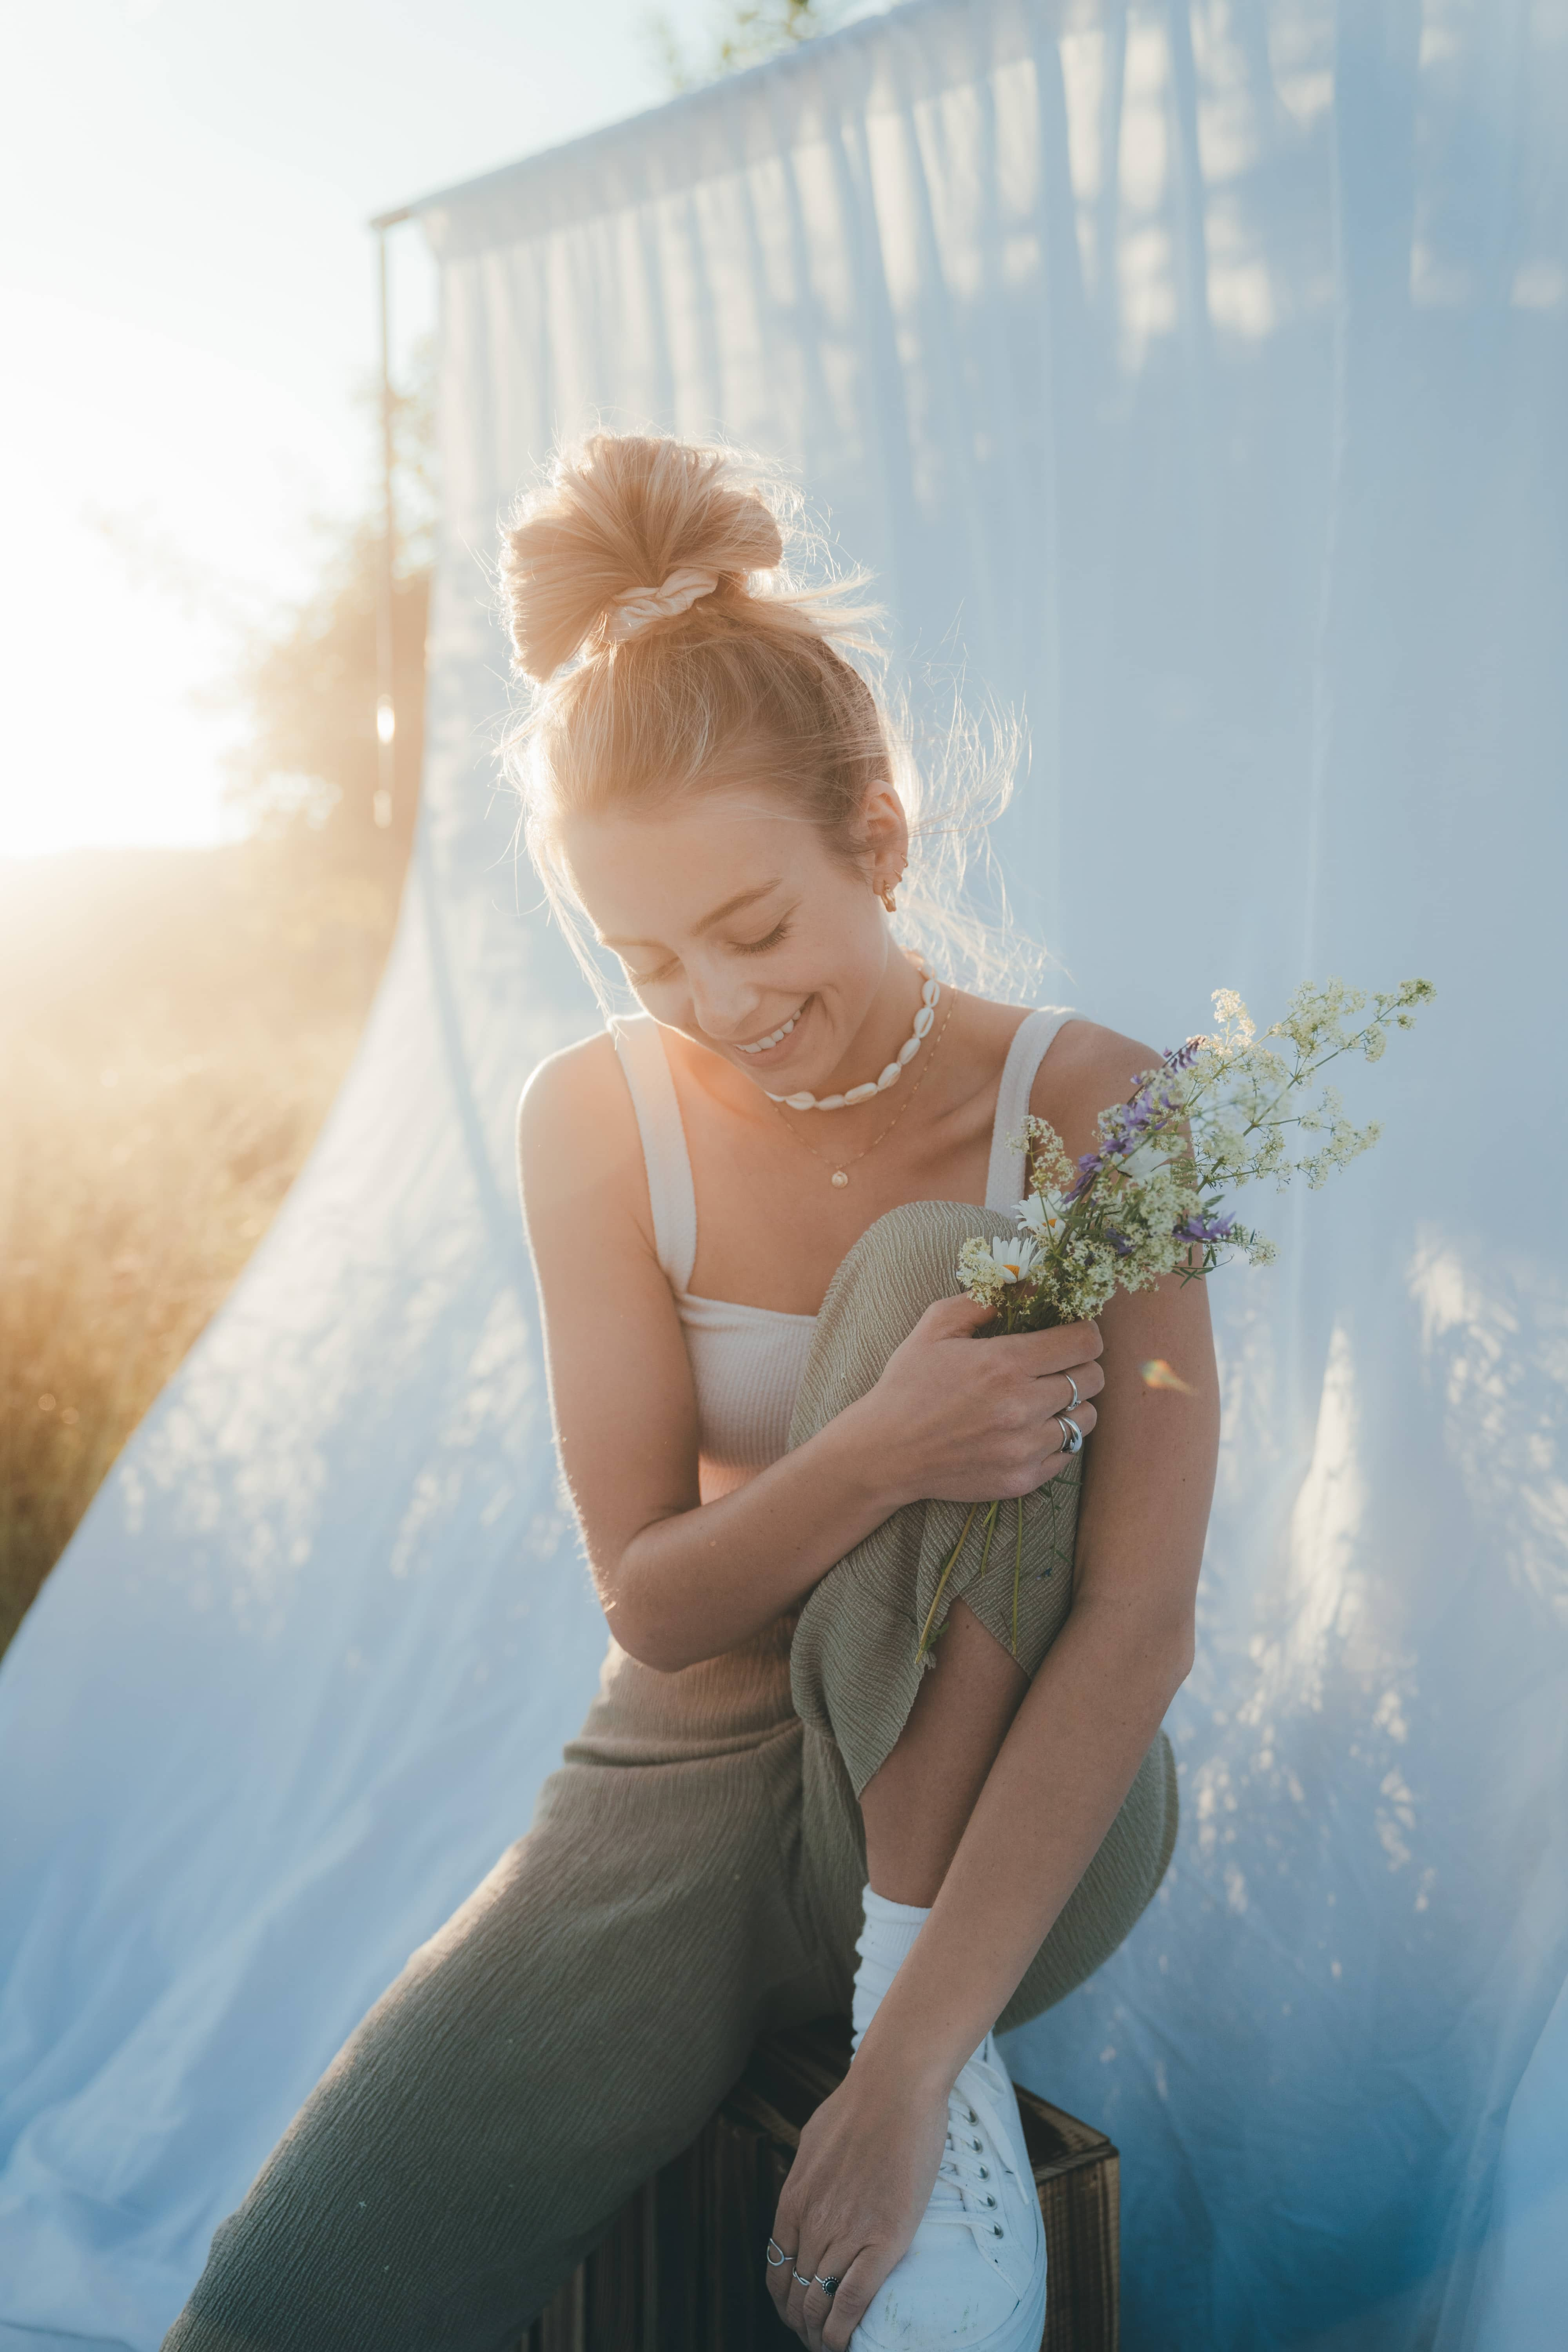 Women sitting and laughing with flowers in her hands while the sun is setting behind her